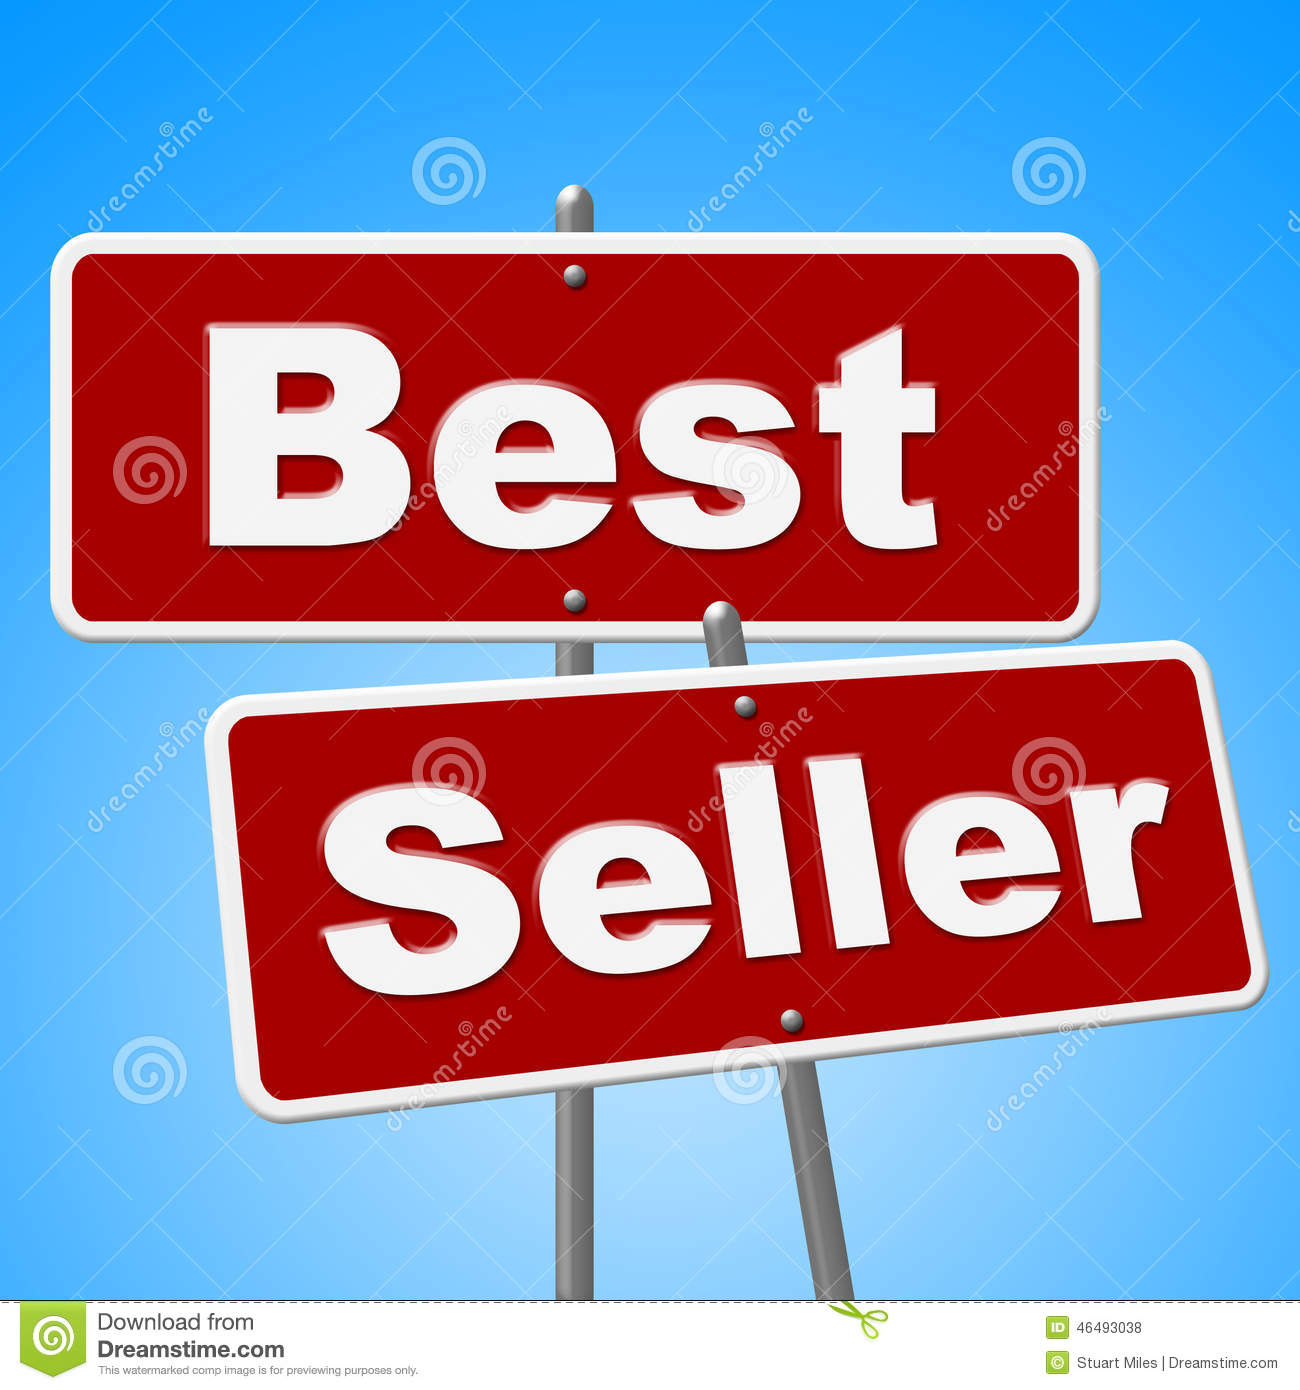 Best Seller Signs Means Vending Rated And Sold Stock. Lean Signs. Downtown Signs Of Stroke. Ying Yang Signs Of Stroke. Heat Stress Signs Of Stroke. Womb Signs Of Stroke. Stuff Signs Of Stroke. Lymph Node Signs. Alligator Signs Of Stroke